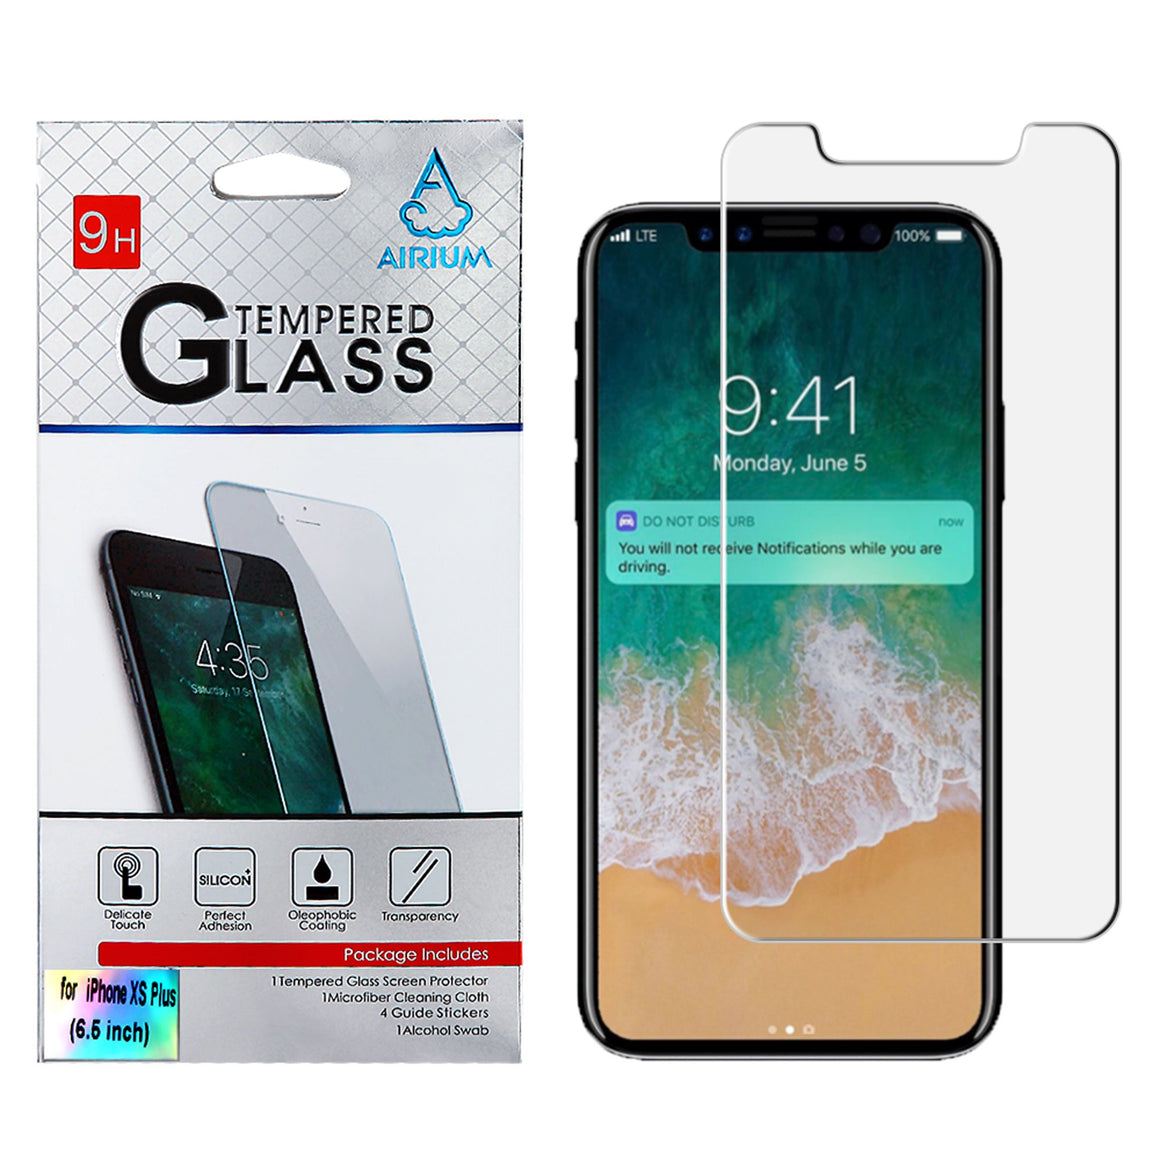 "Tempered Glass Screen Protector for iPhone Xs Max (6.5"") - MPC - MyPhoneCase.com"